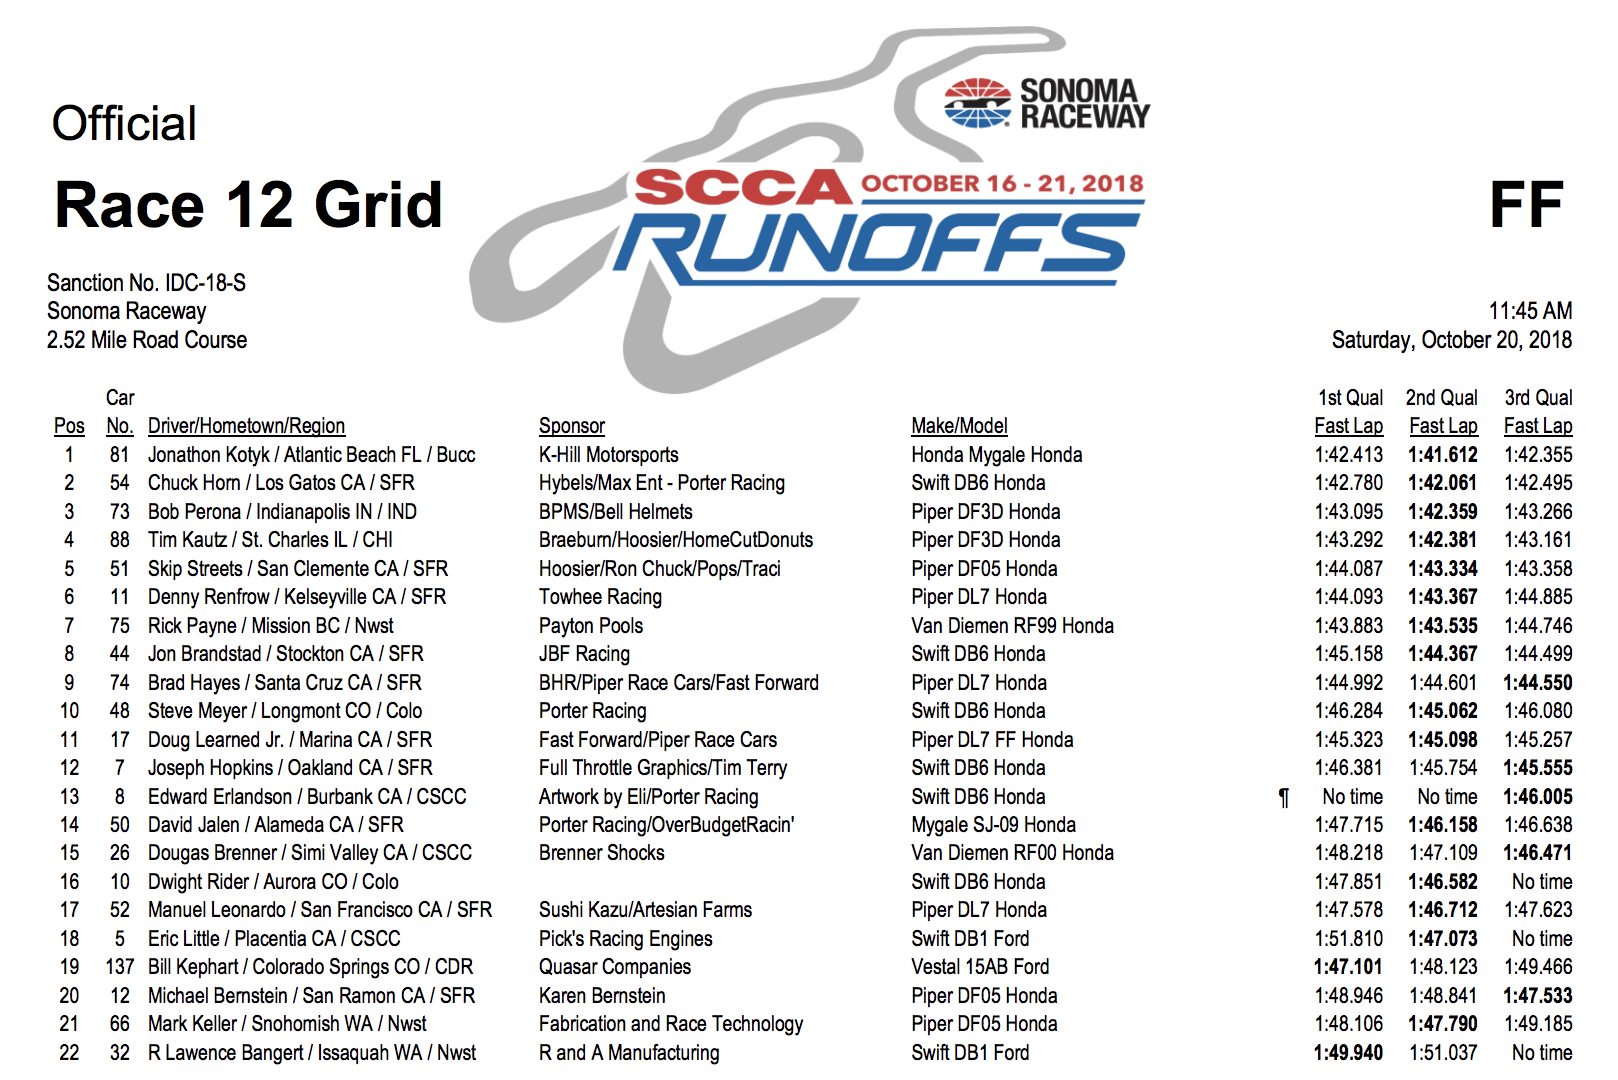 FF Runoffs Starting Grid